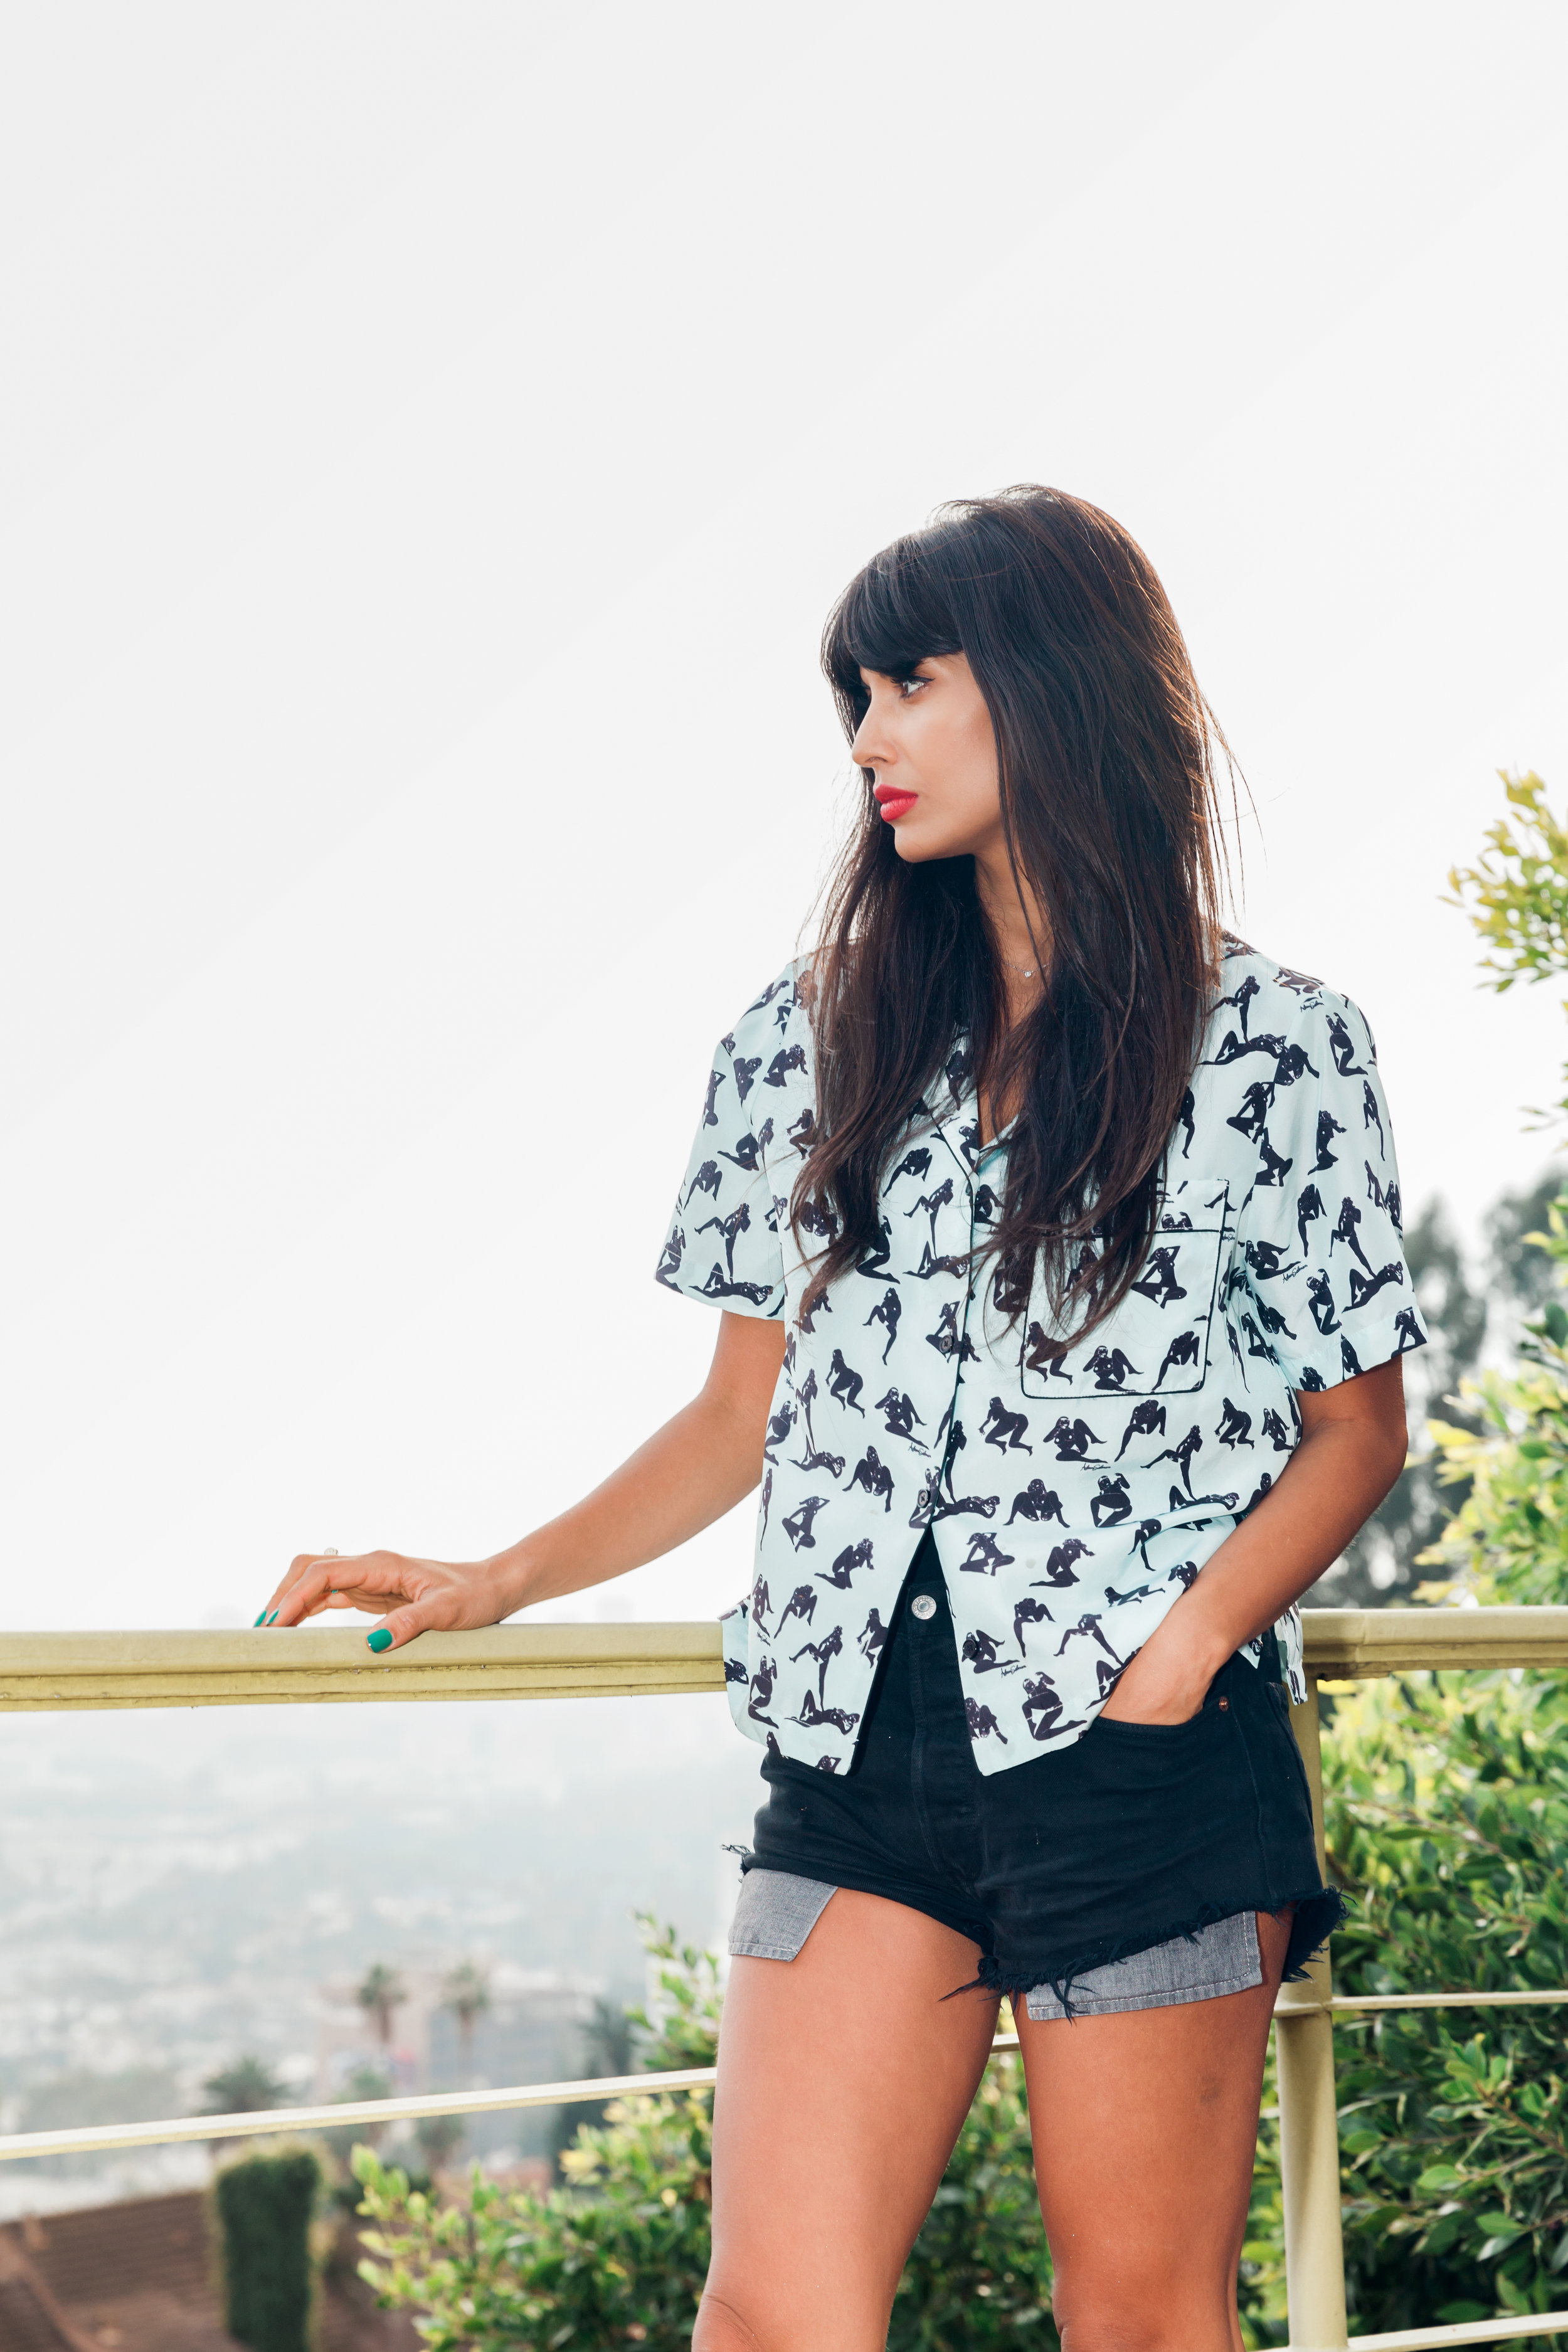 Jameela Jamil for Passerbuys by Maggie Shannon17.jpg